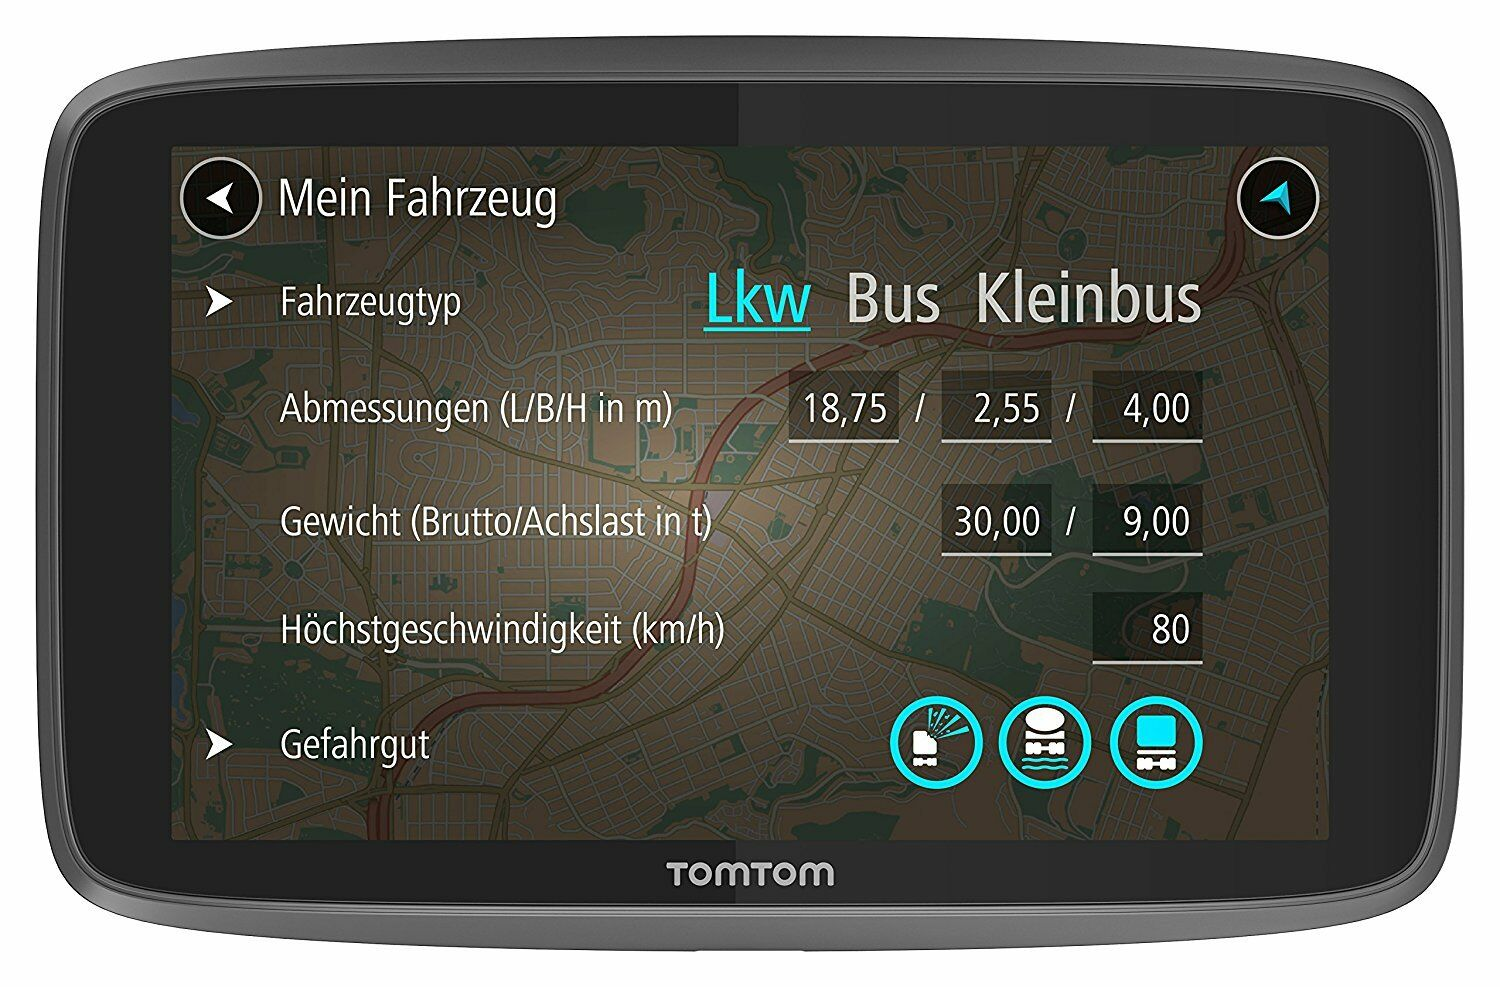 tomtom lkw navi test vergleich tomtom lkw navi g nstig. Black Bedroom Furniture Sets. Home Design Ideas